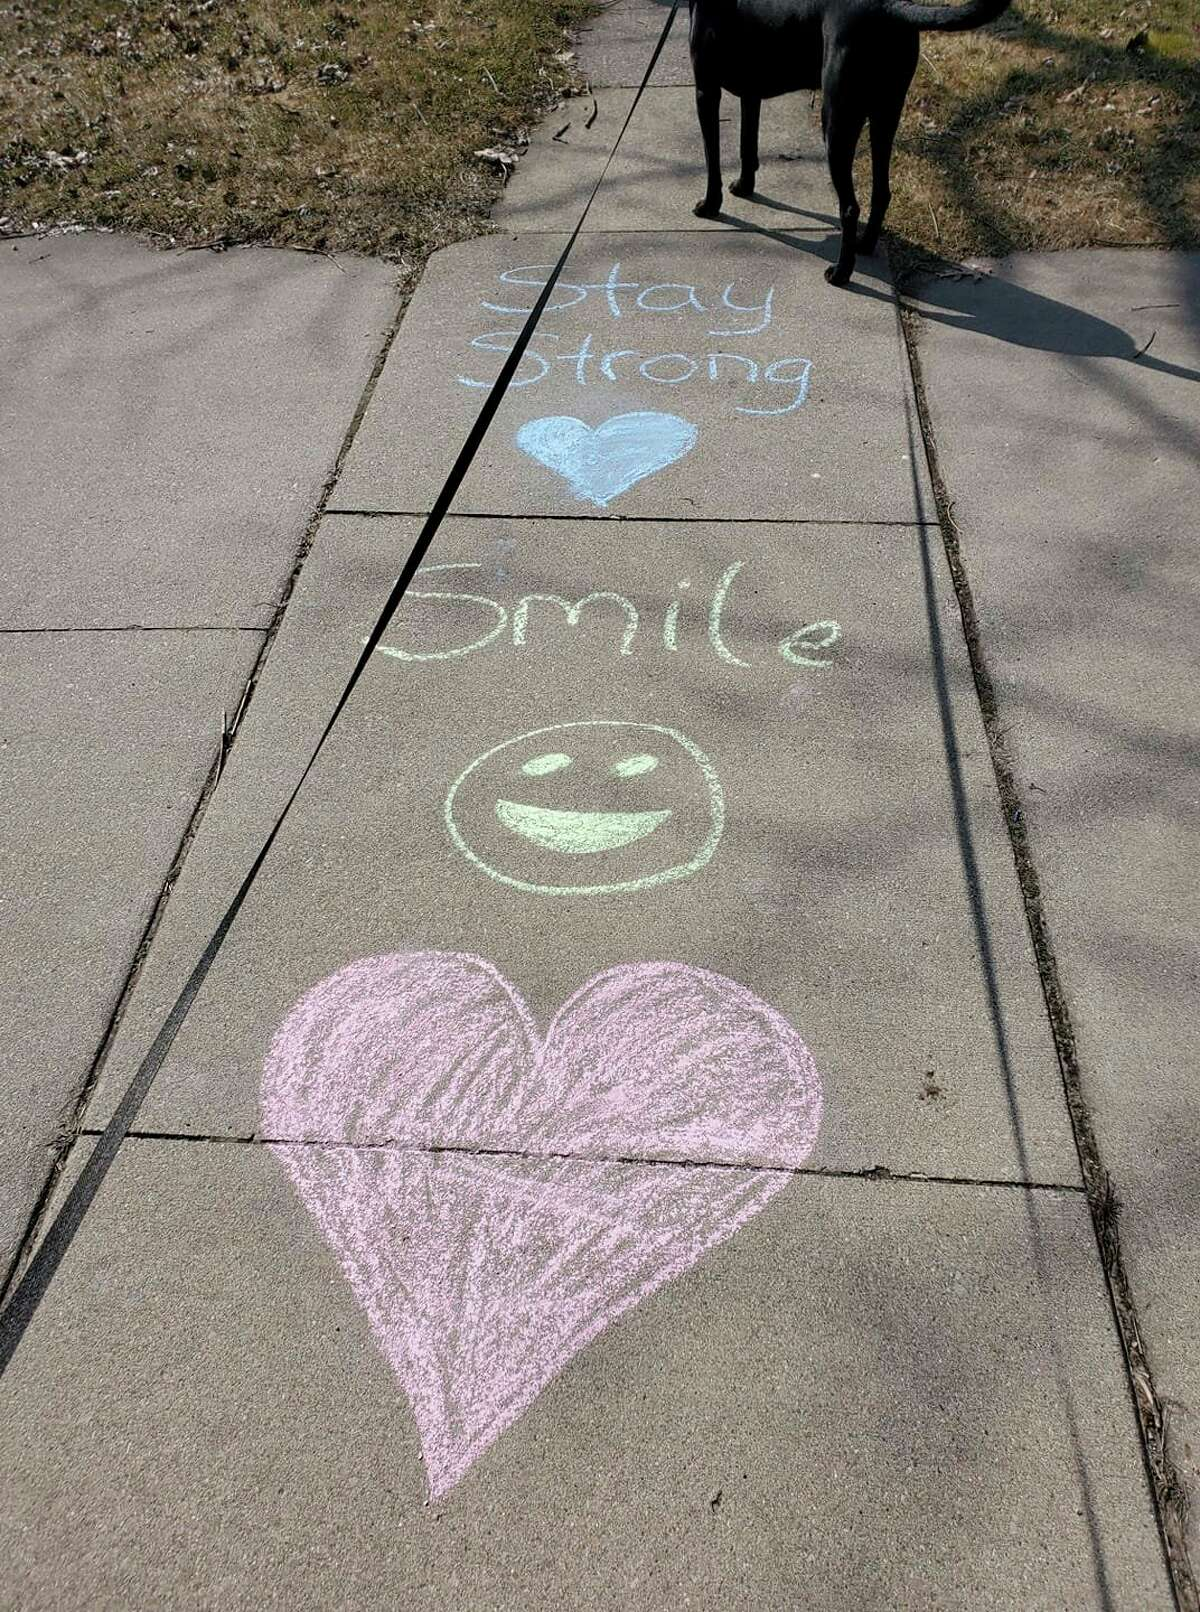 Positive messages are written on the sidewalk in chalk, part of a movement called Chalk Your Walk that gained momentum via social media to spread cheer in the neighborhood as people were socially distancing. (Photo provided/Julie A. Yahr)